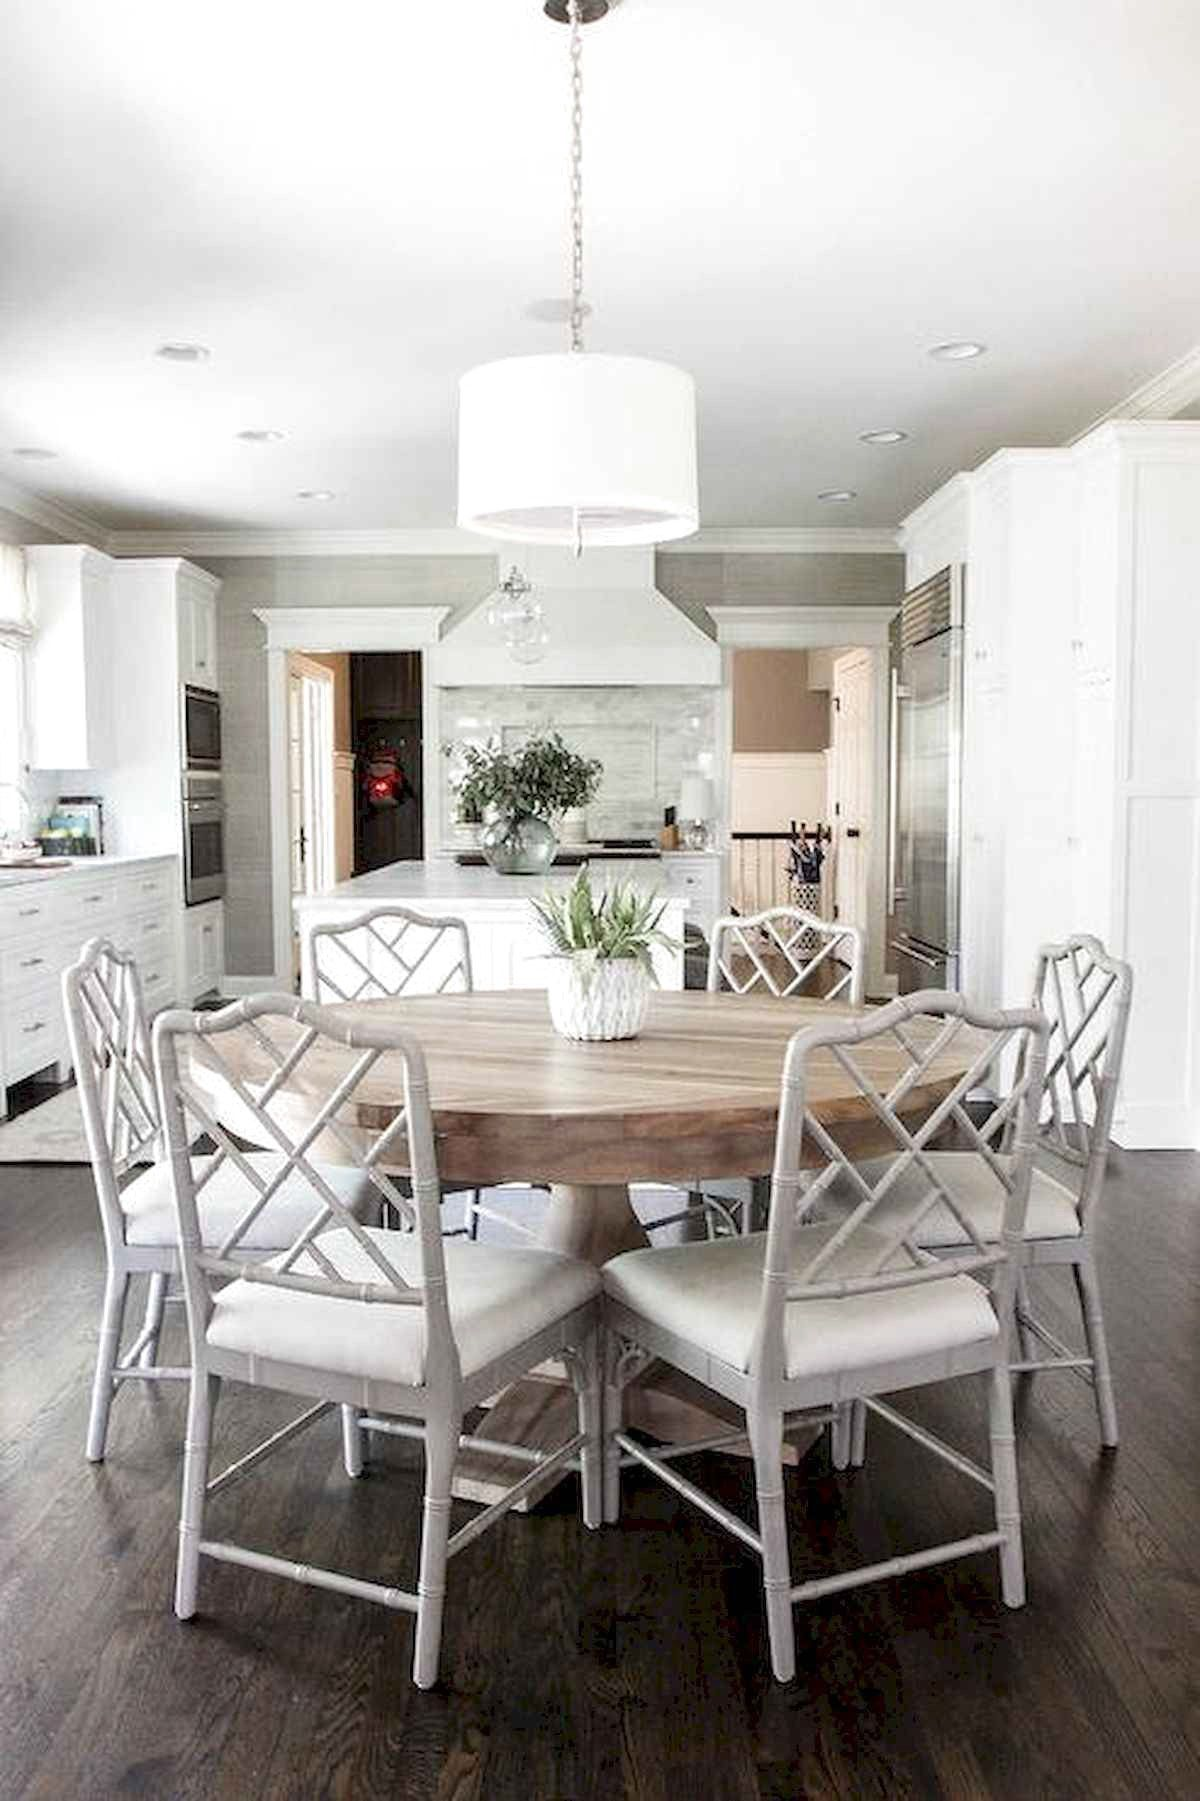 53 Modern Farmhouse Dining Room Table Ideas Decor And Makeover